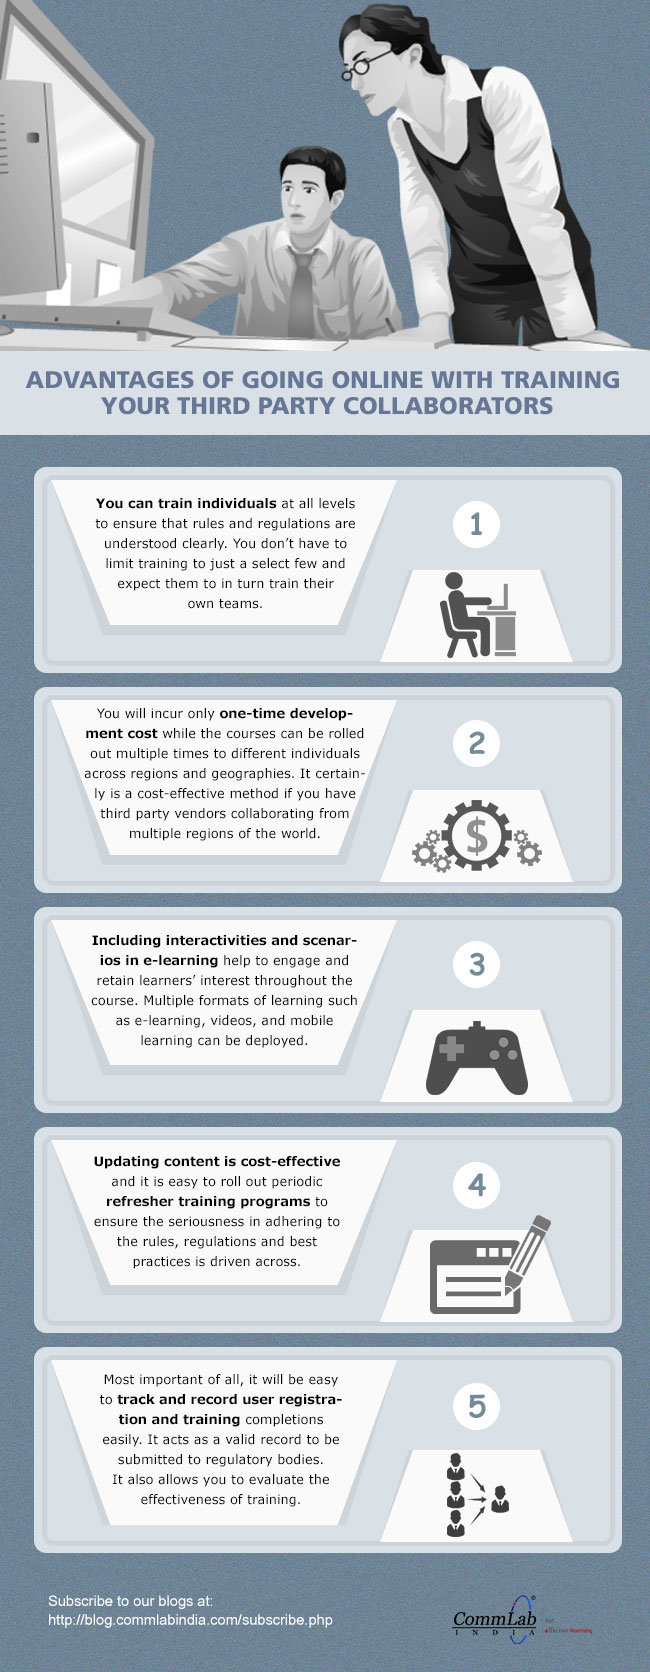 Advantages of Going Online To Train Your Third Party Collaborators [Infographic]